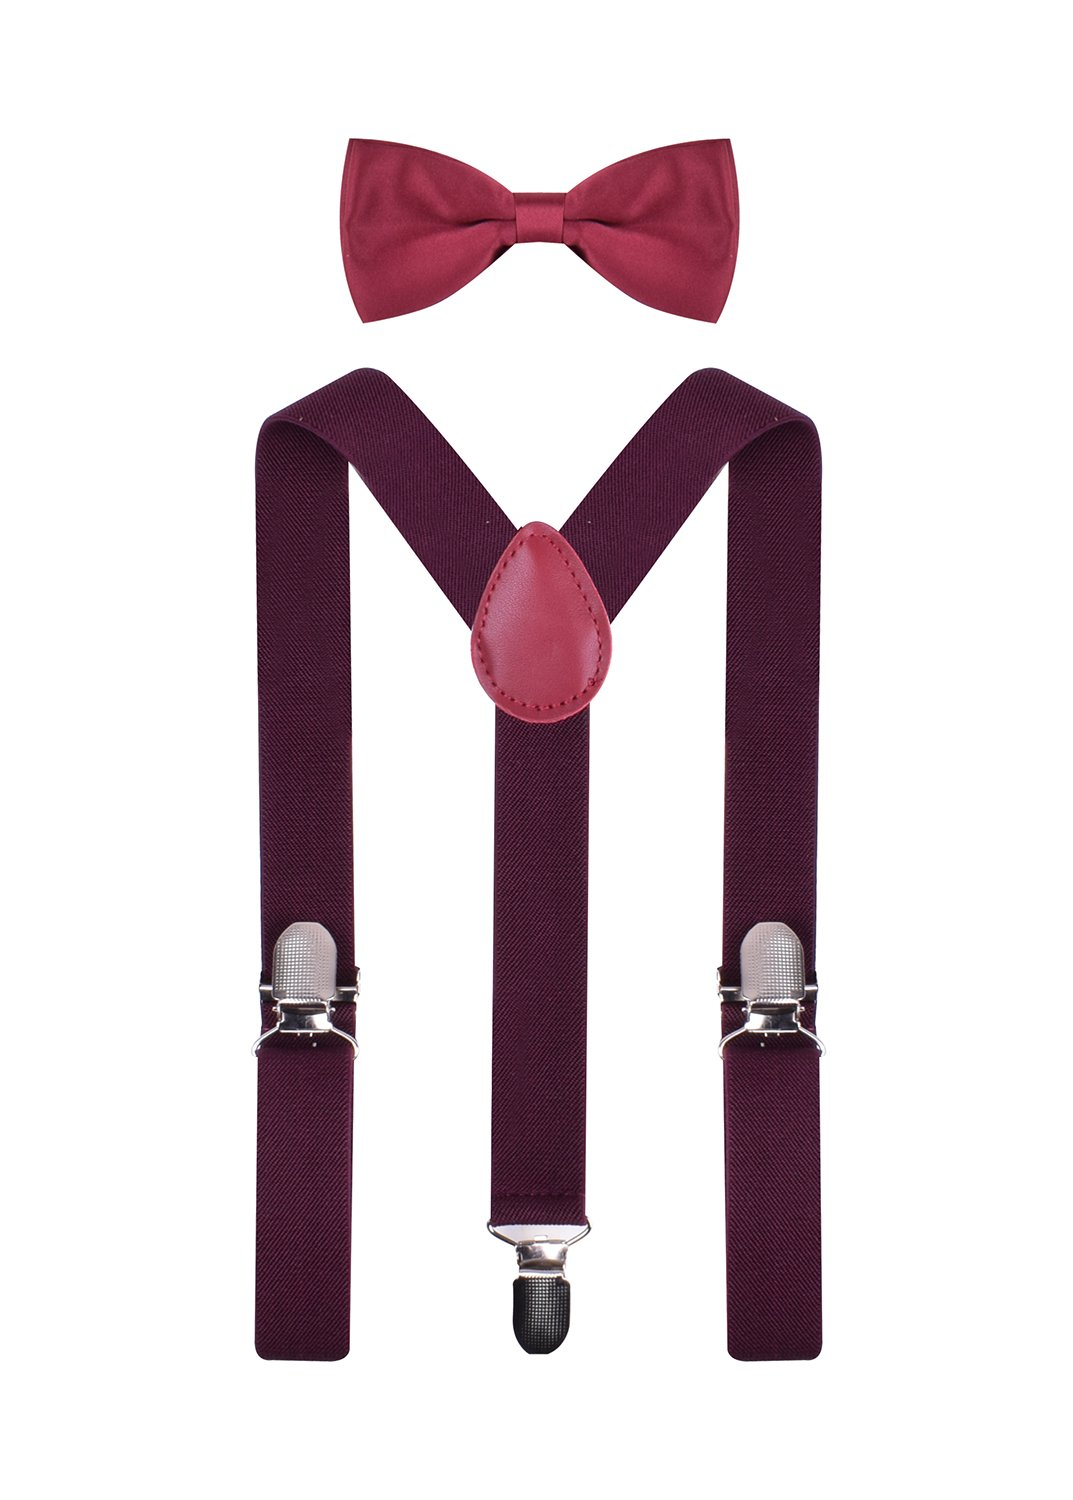 BODY STRENTH Boys Suspenders and Bow Tie Set Adjustable Elastic BODYSTR80004